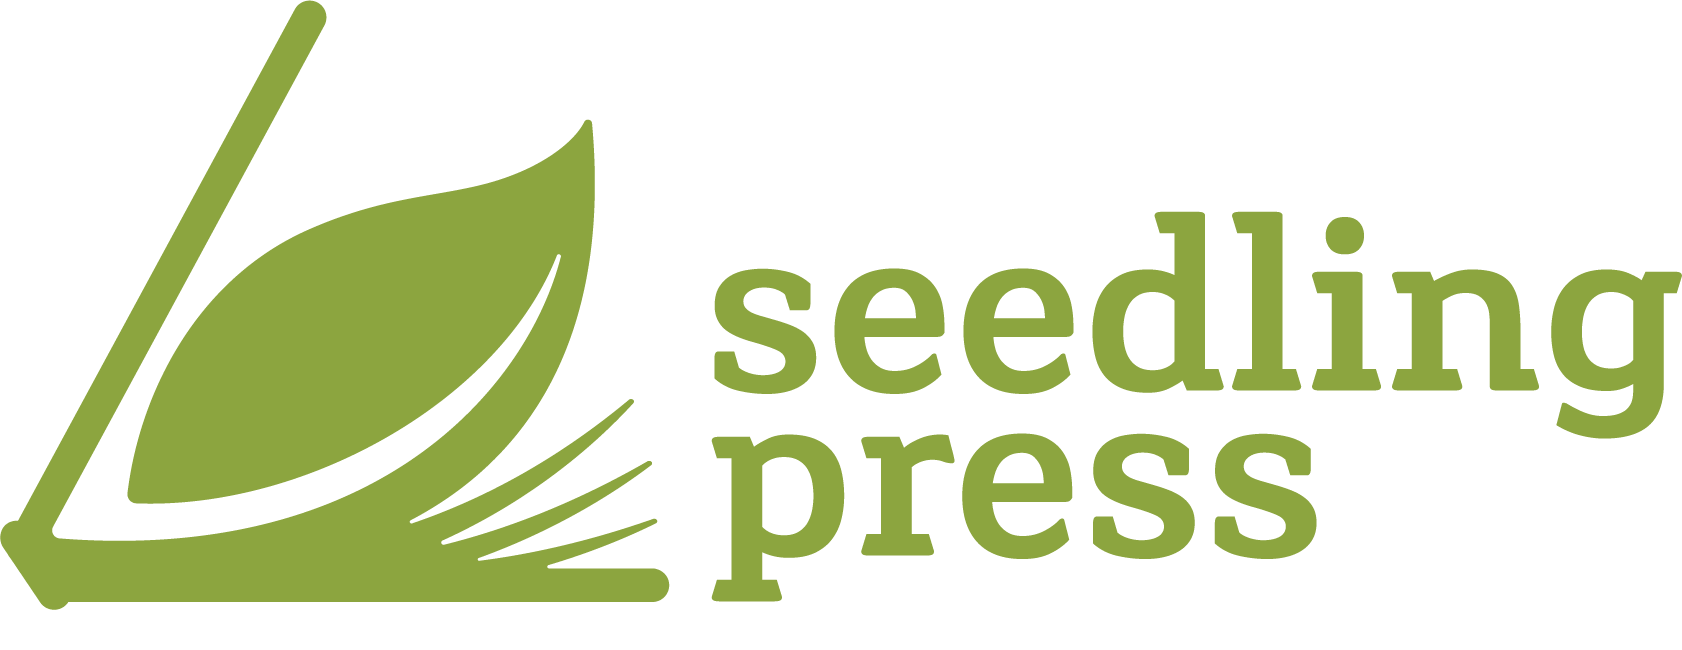 Seedling Press